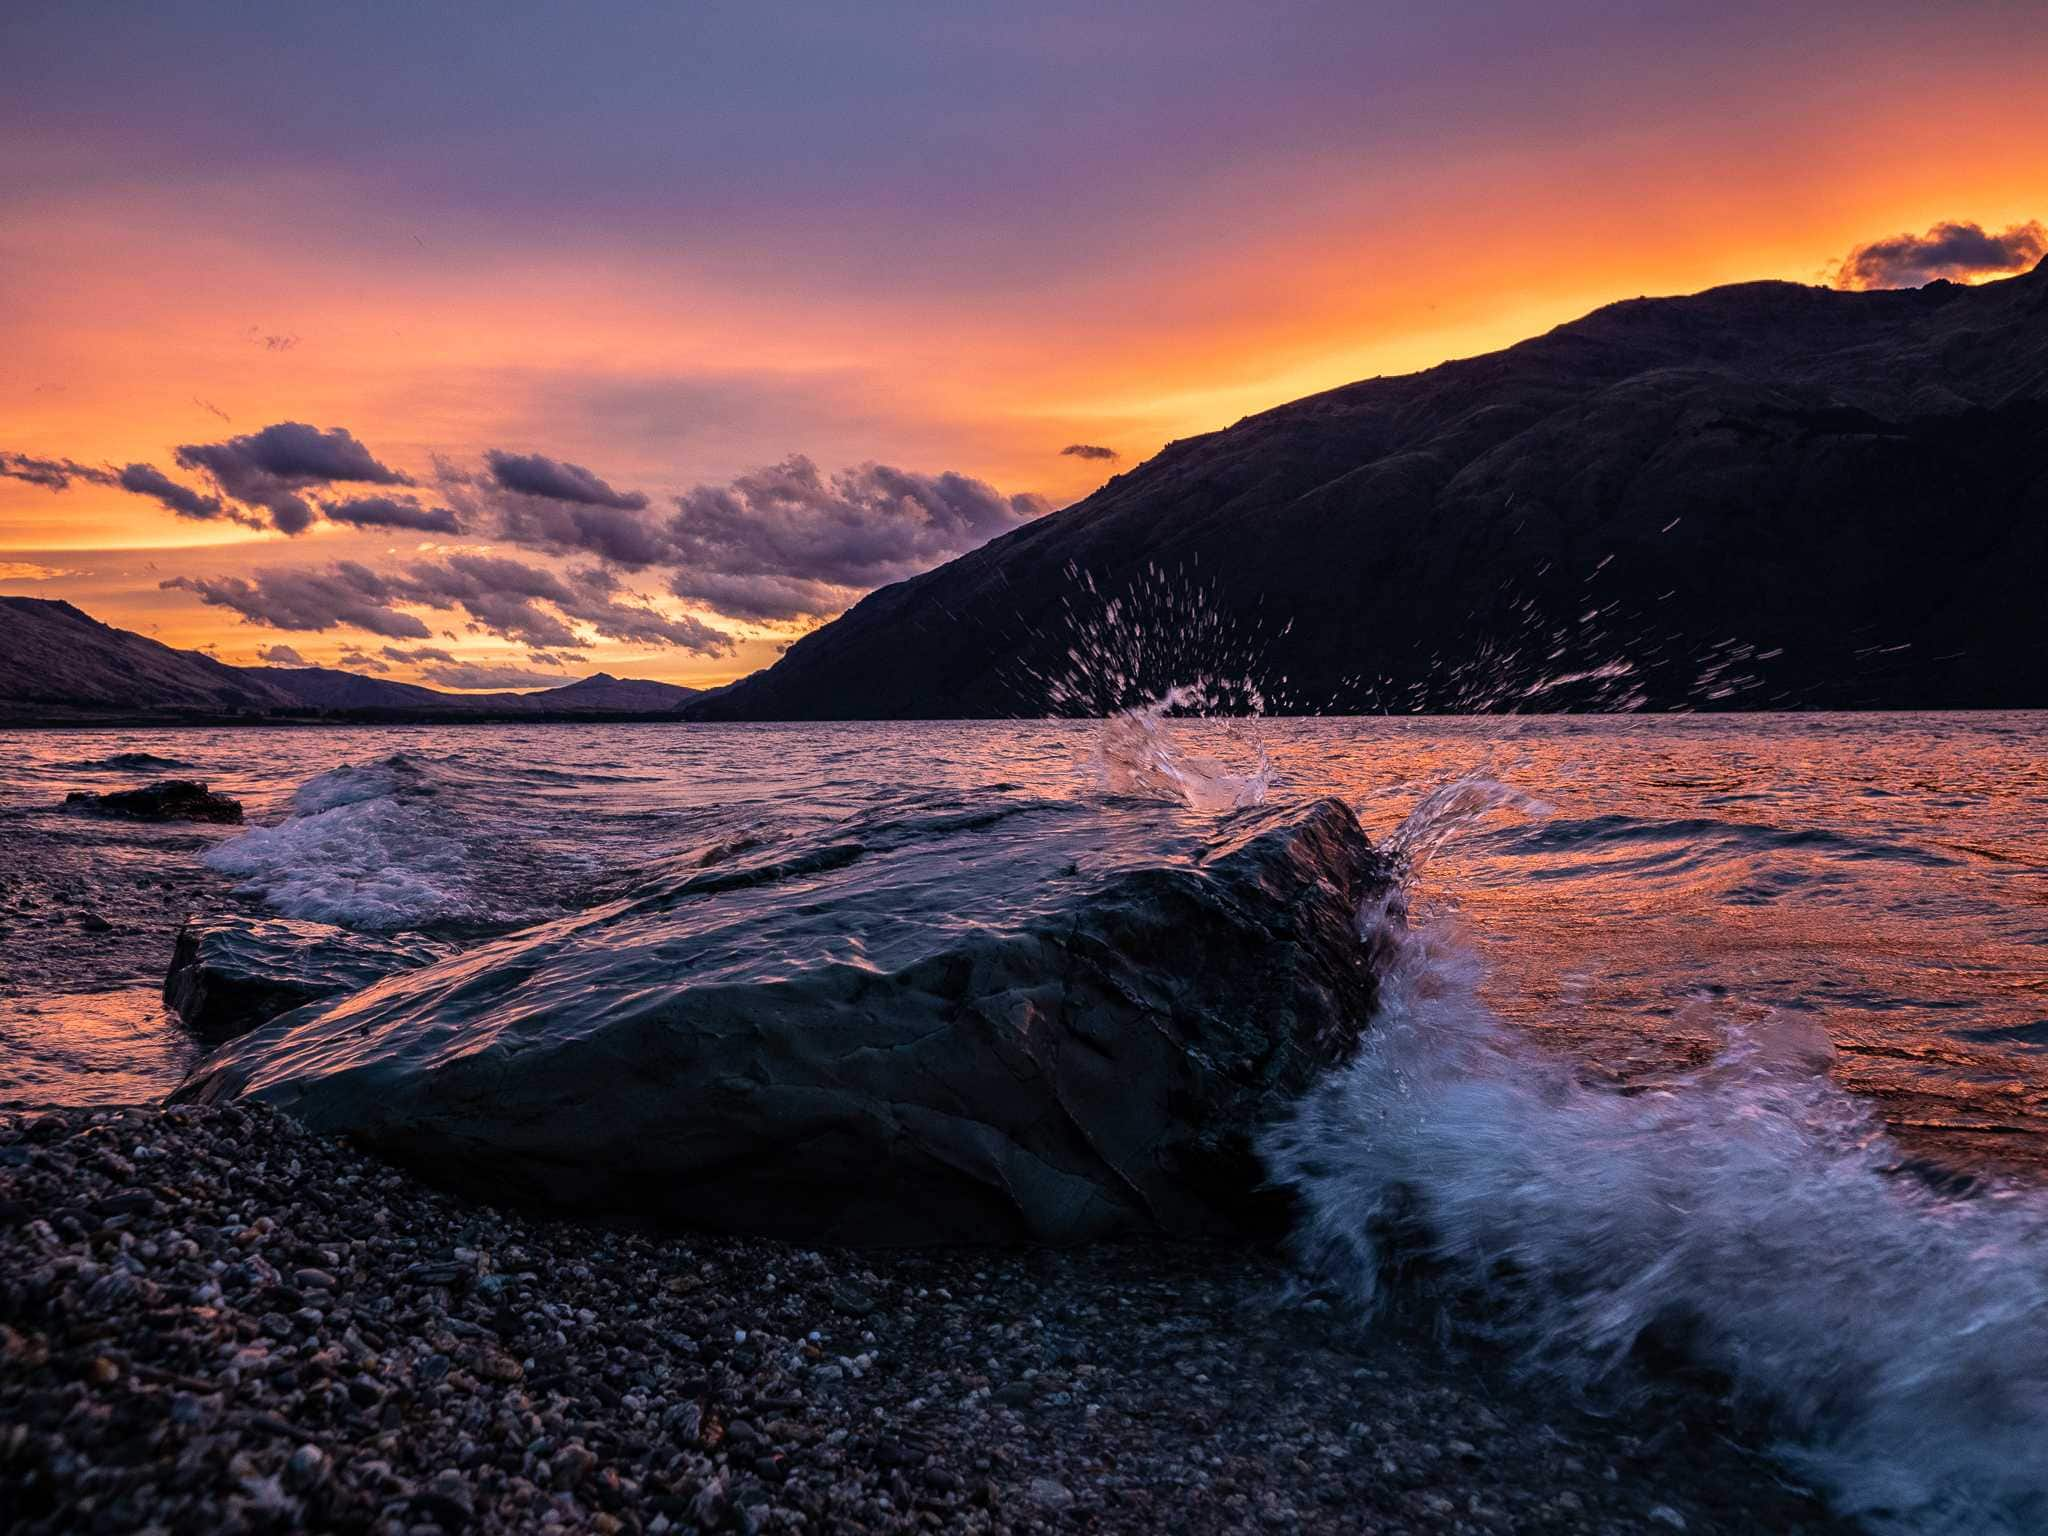 water splashes on large rock in foreground during sunset